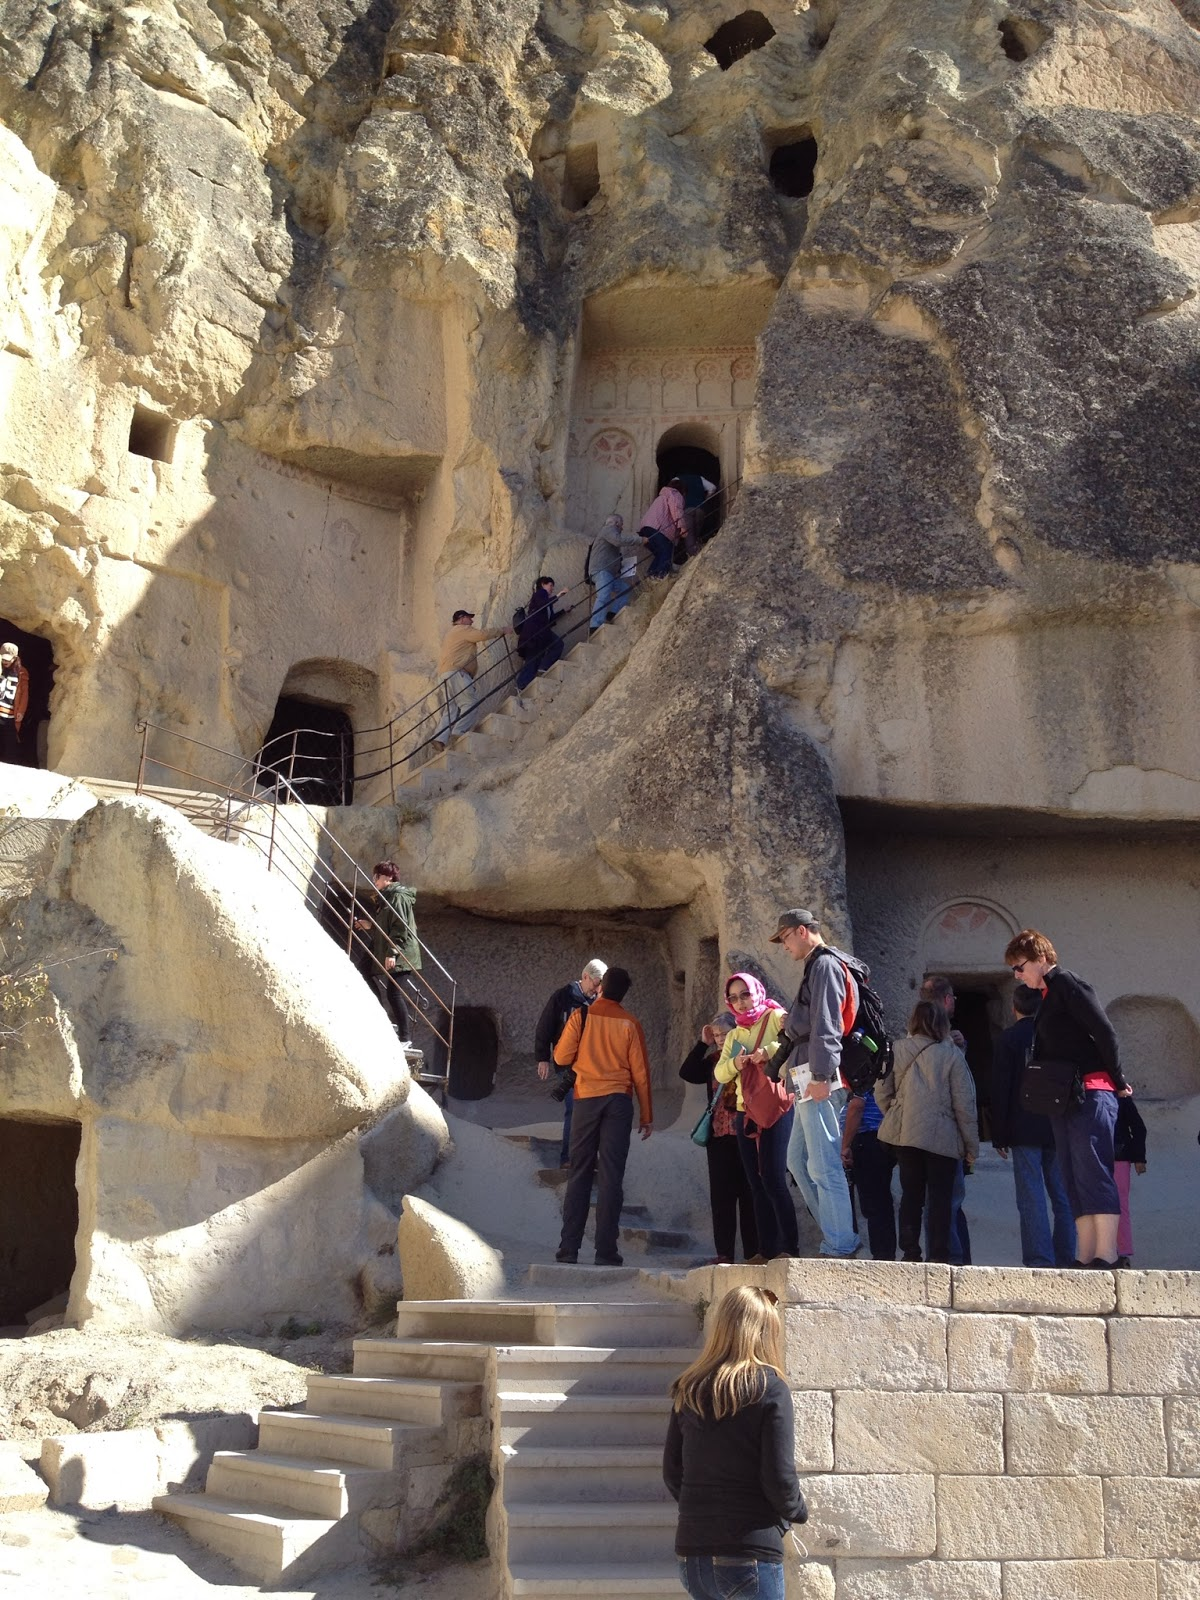 Cappadocia - Some of the churches can only be reached by climbing some narrow stairs